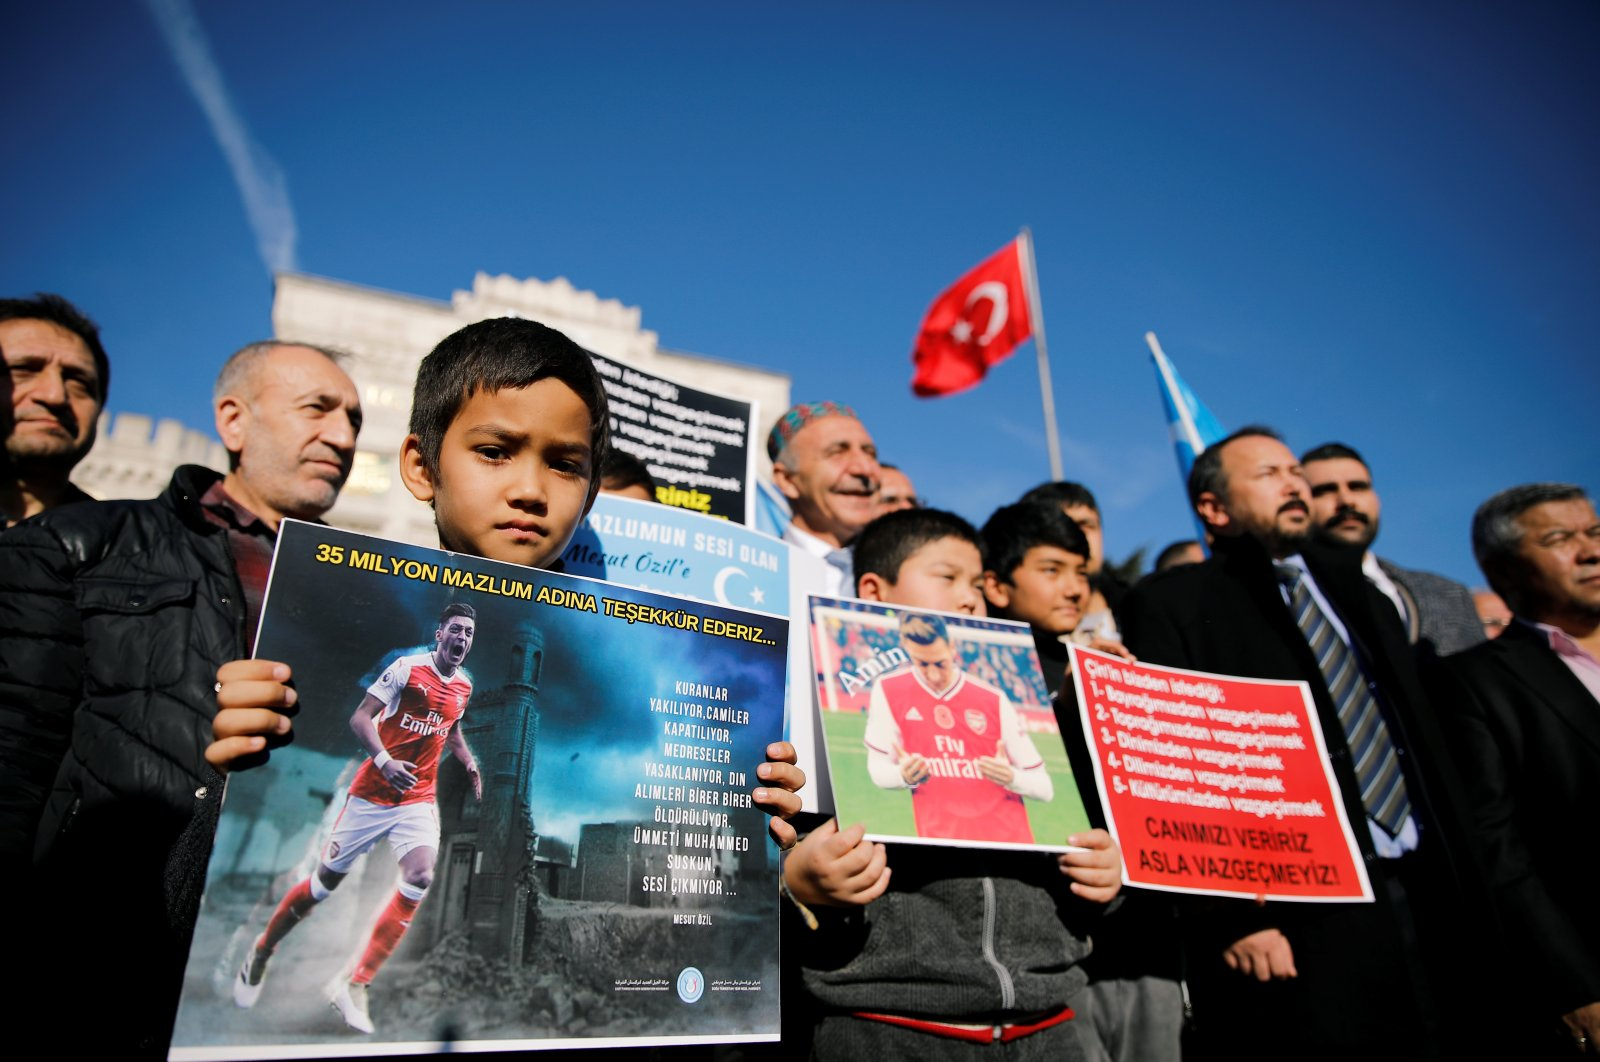 Uighur boys hold placards with the pictures of English soccer club Arsenal's midfielder Mesut Özil during a protest against China in Istanbul, Turkey, Dec. 14, 2019. (REUTERS Photo)